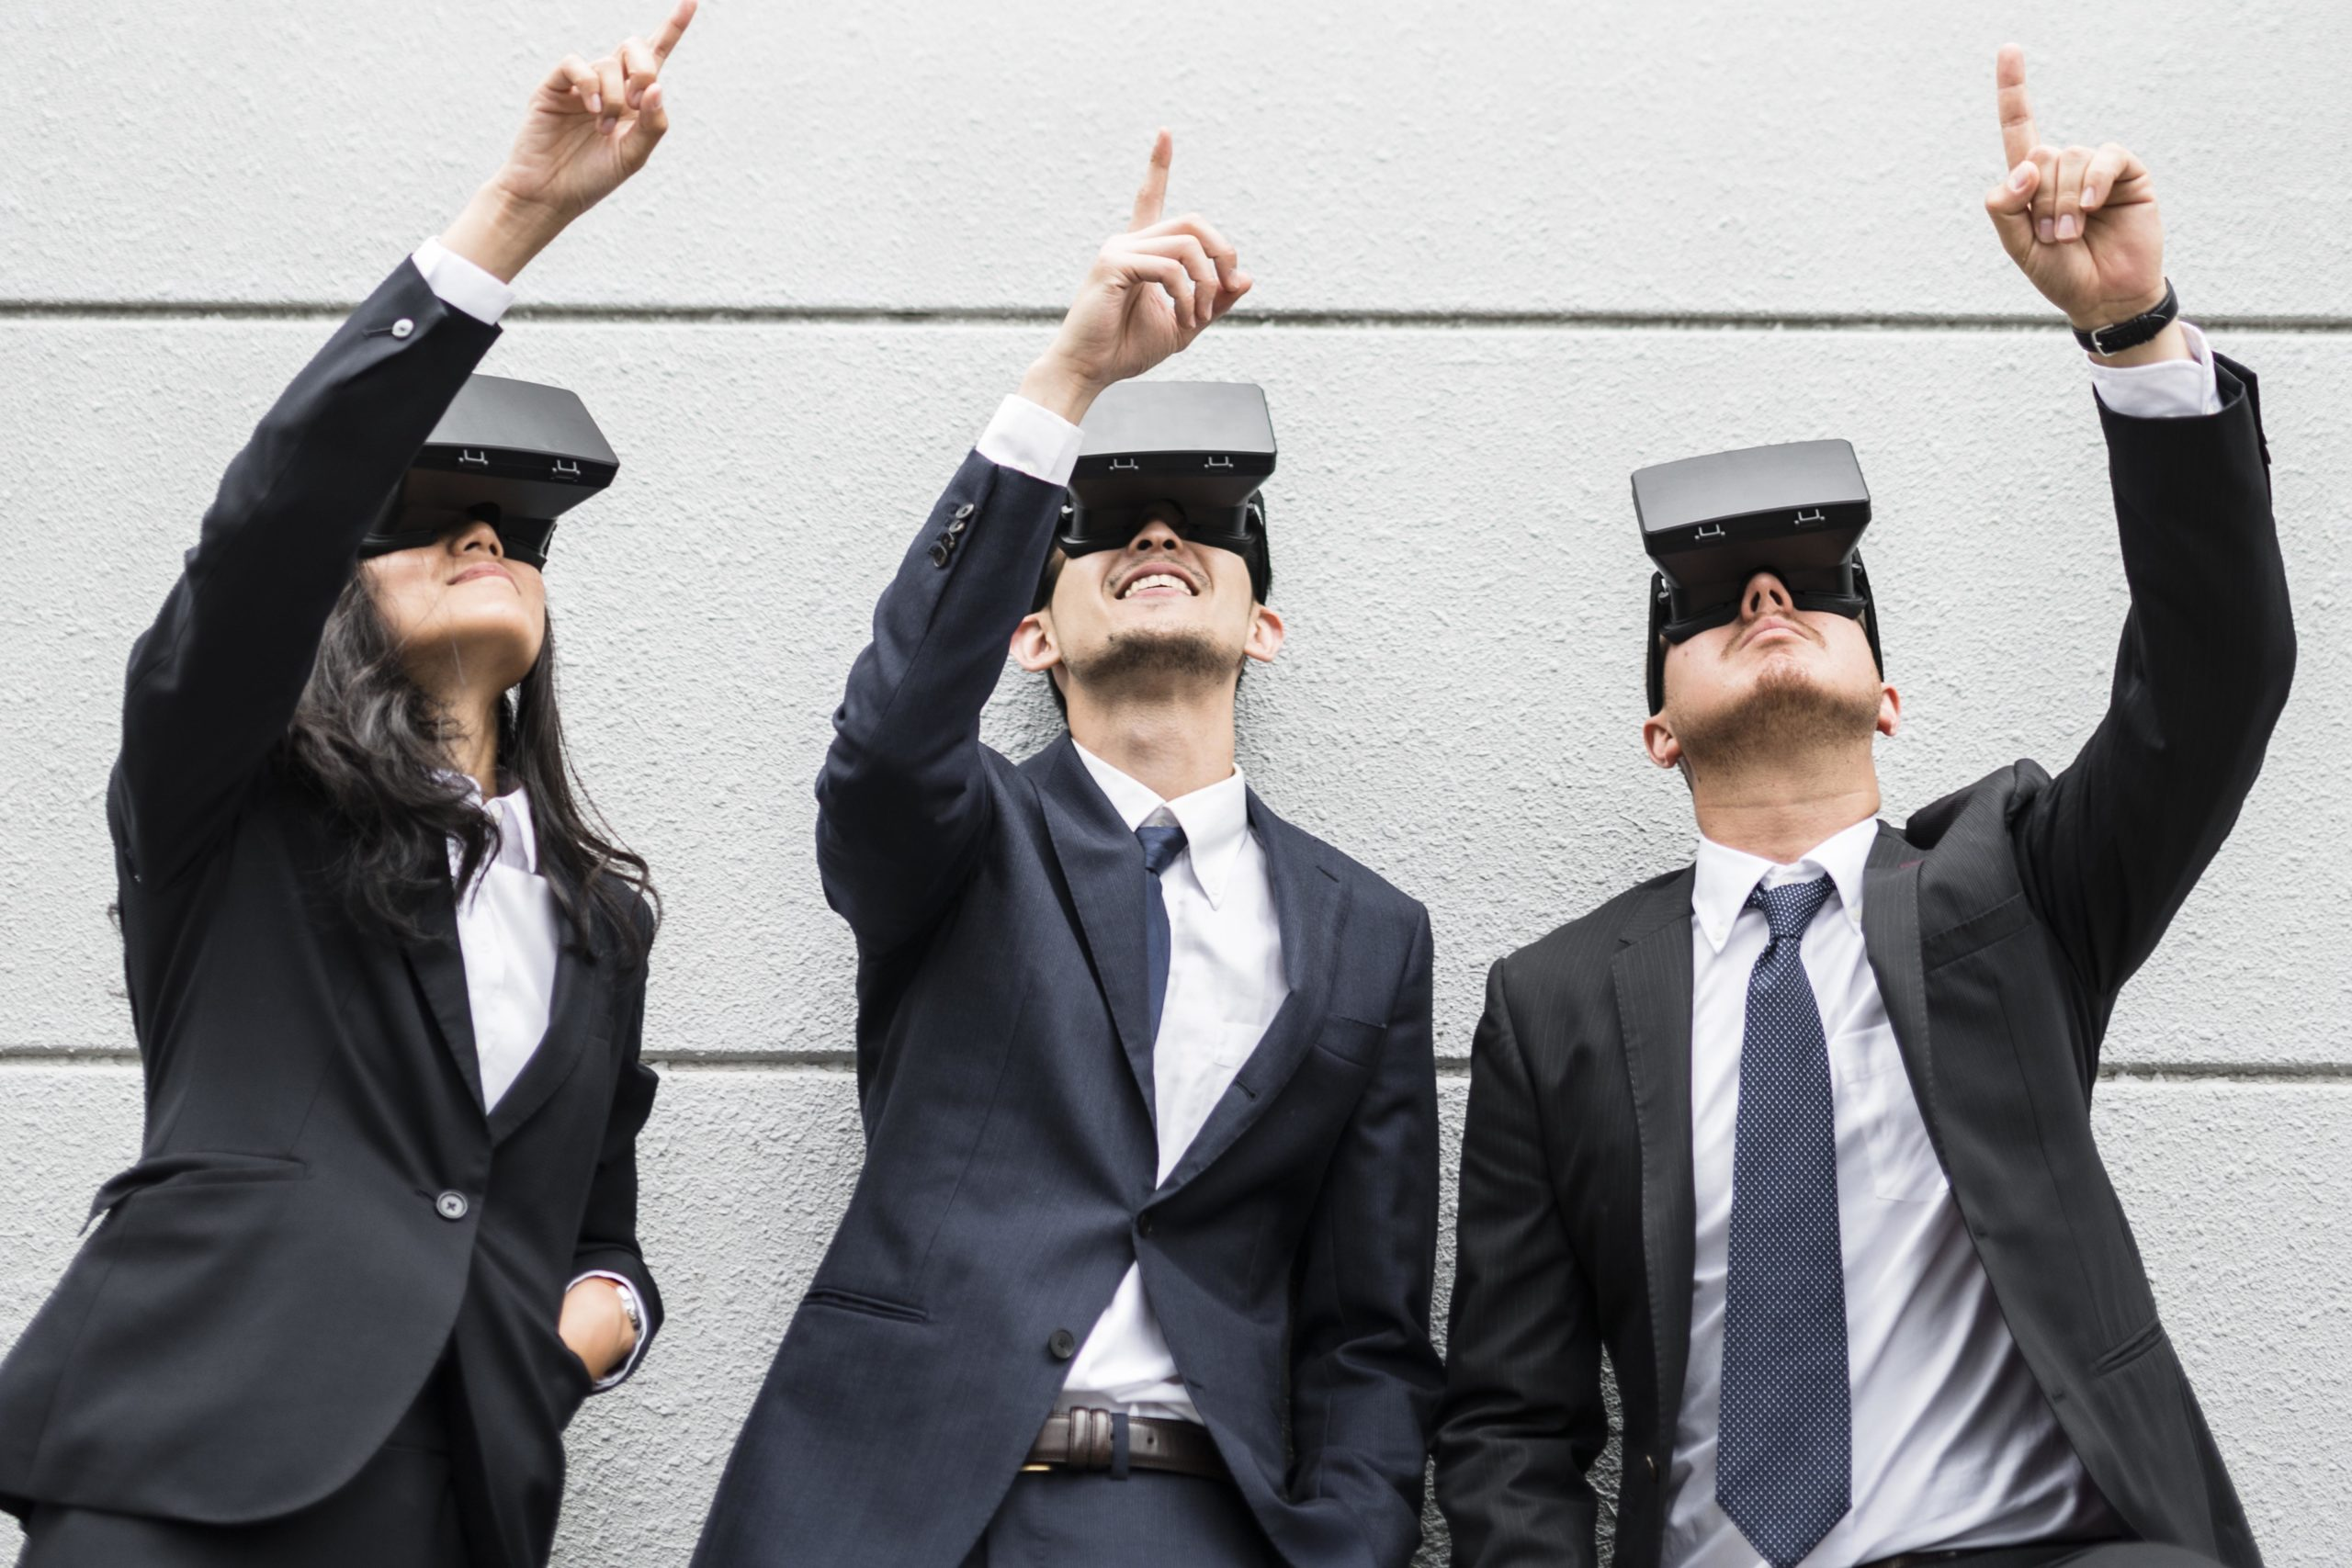 Virtual reality and teleworking